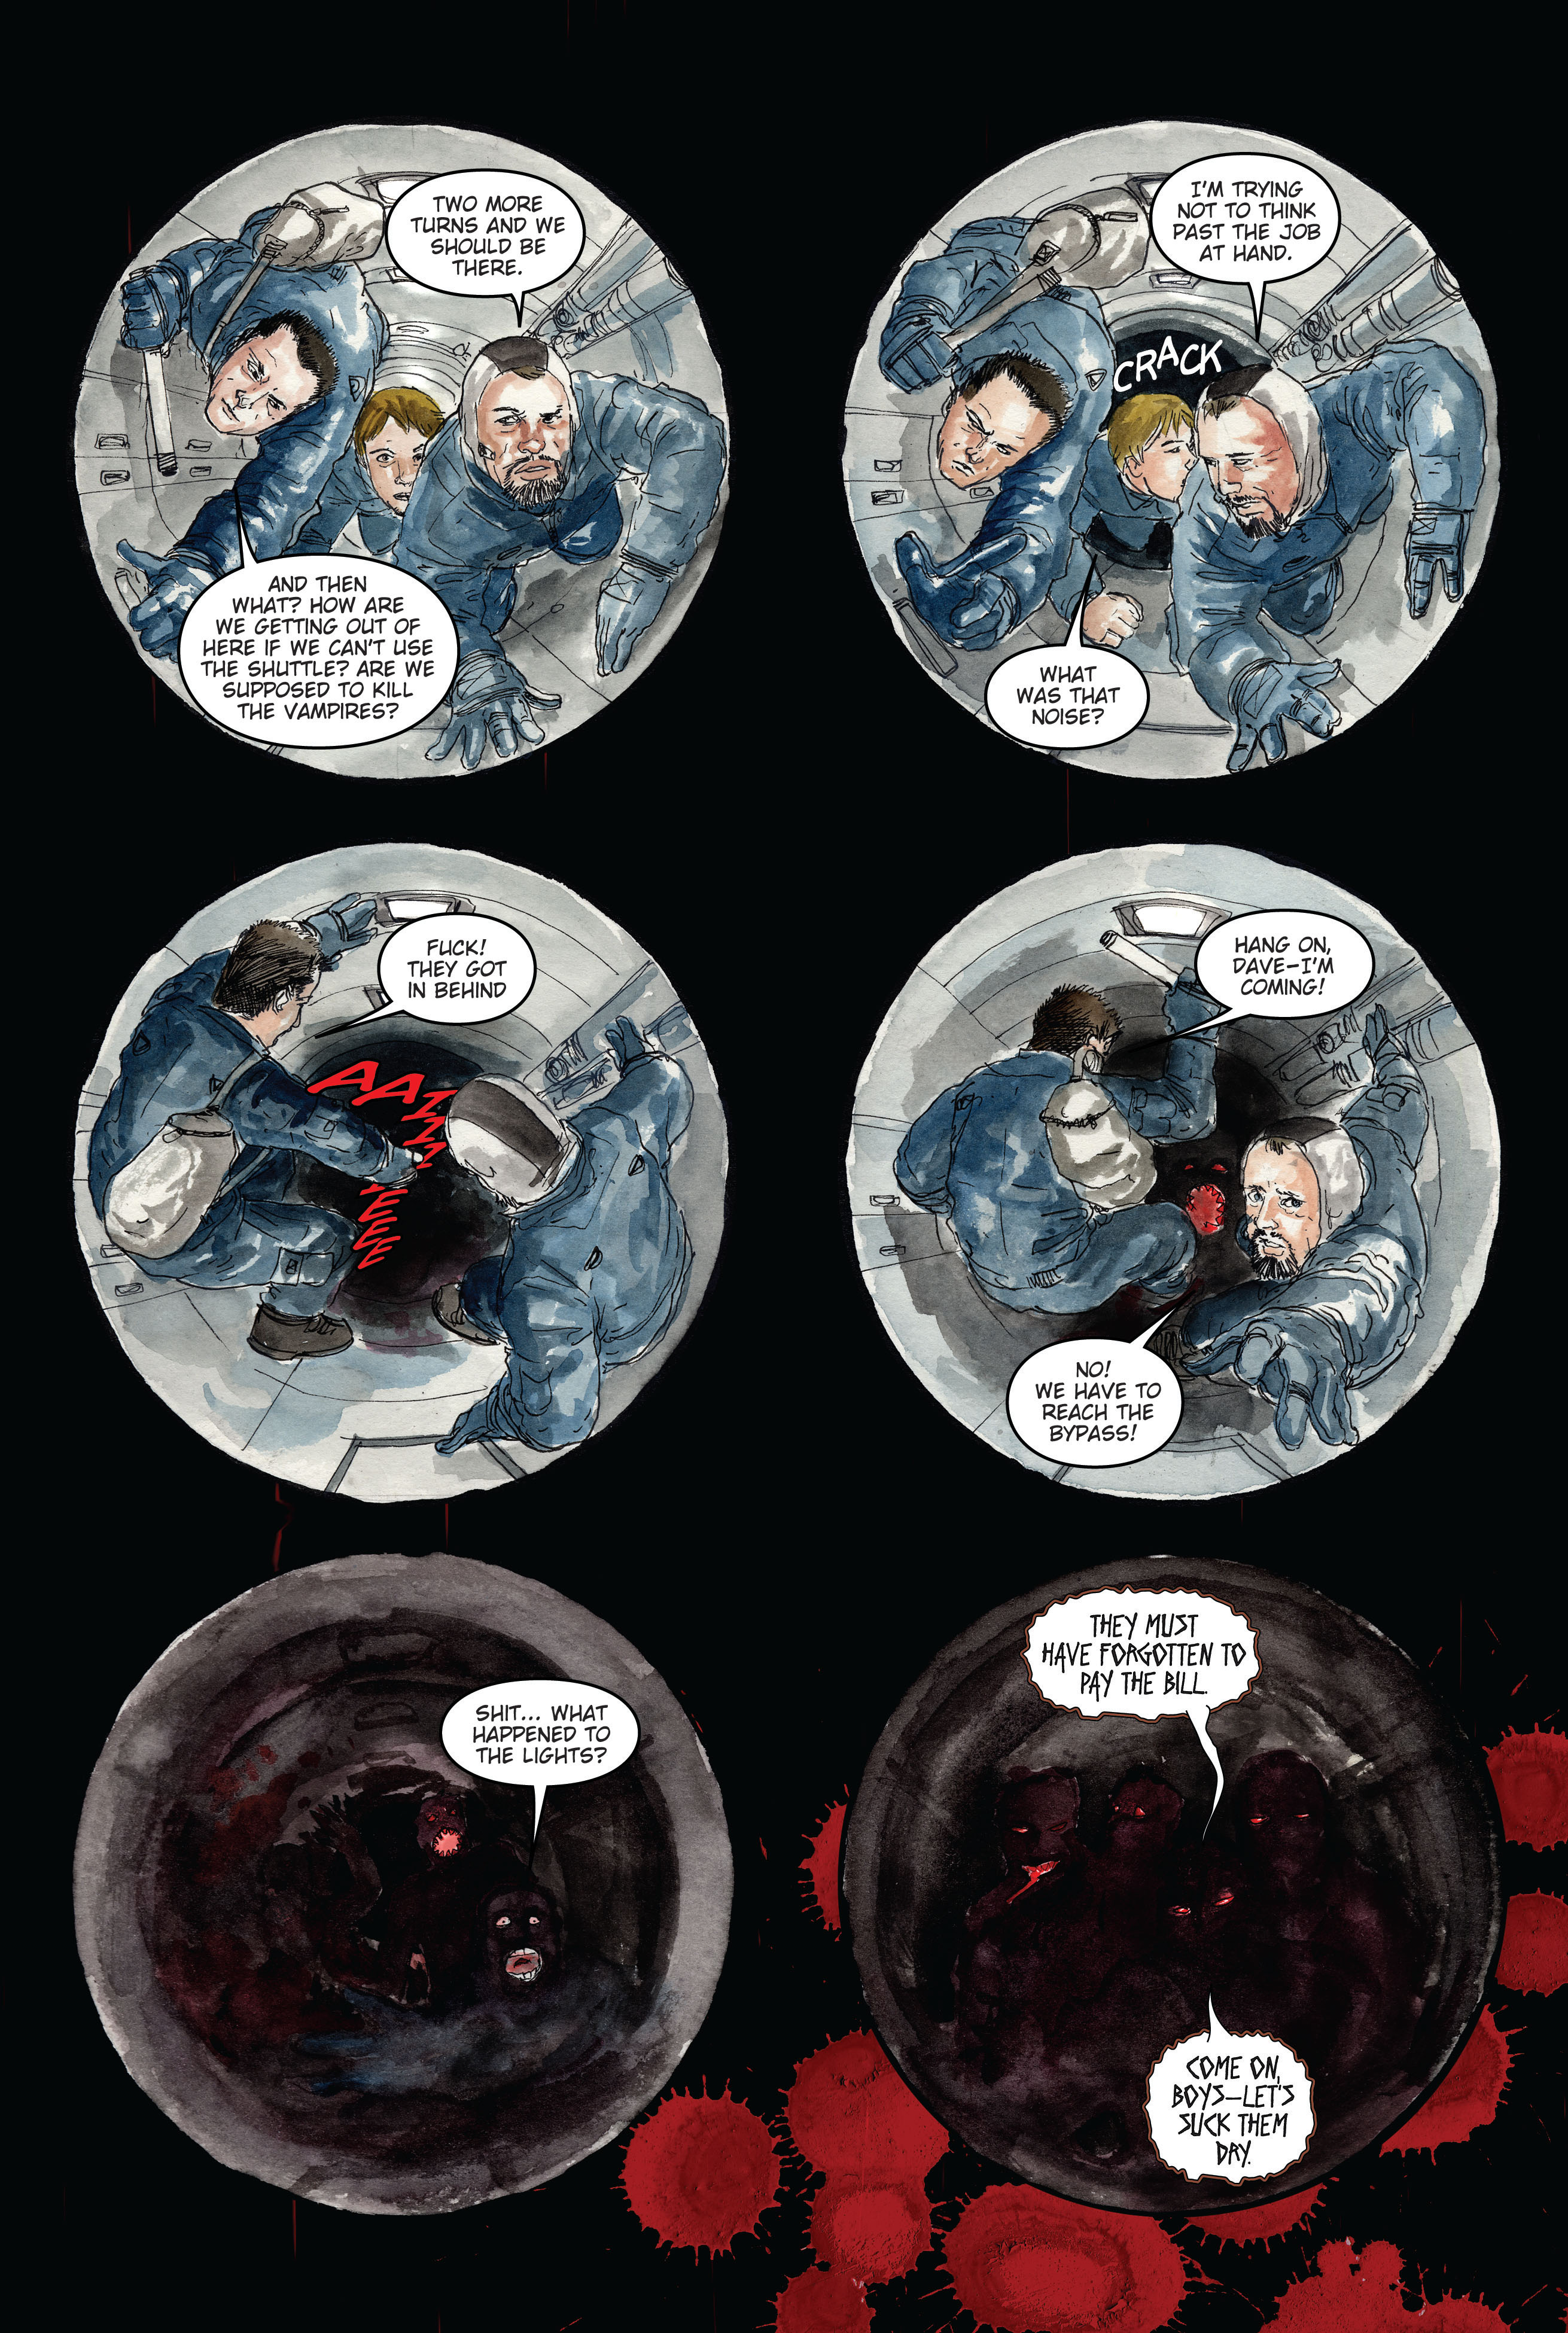 30 Days of Night: Dead Space 3 Page 3